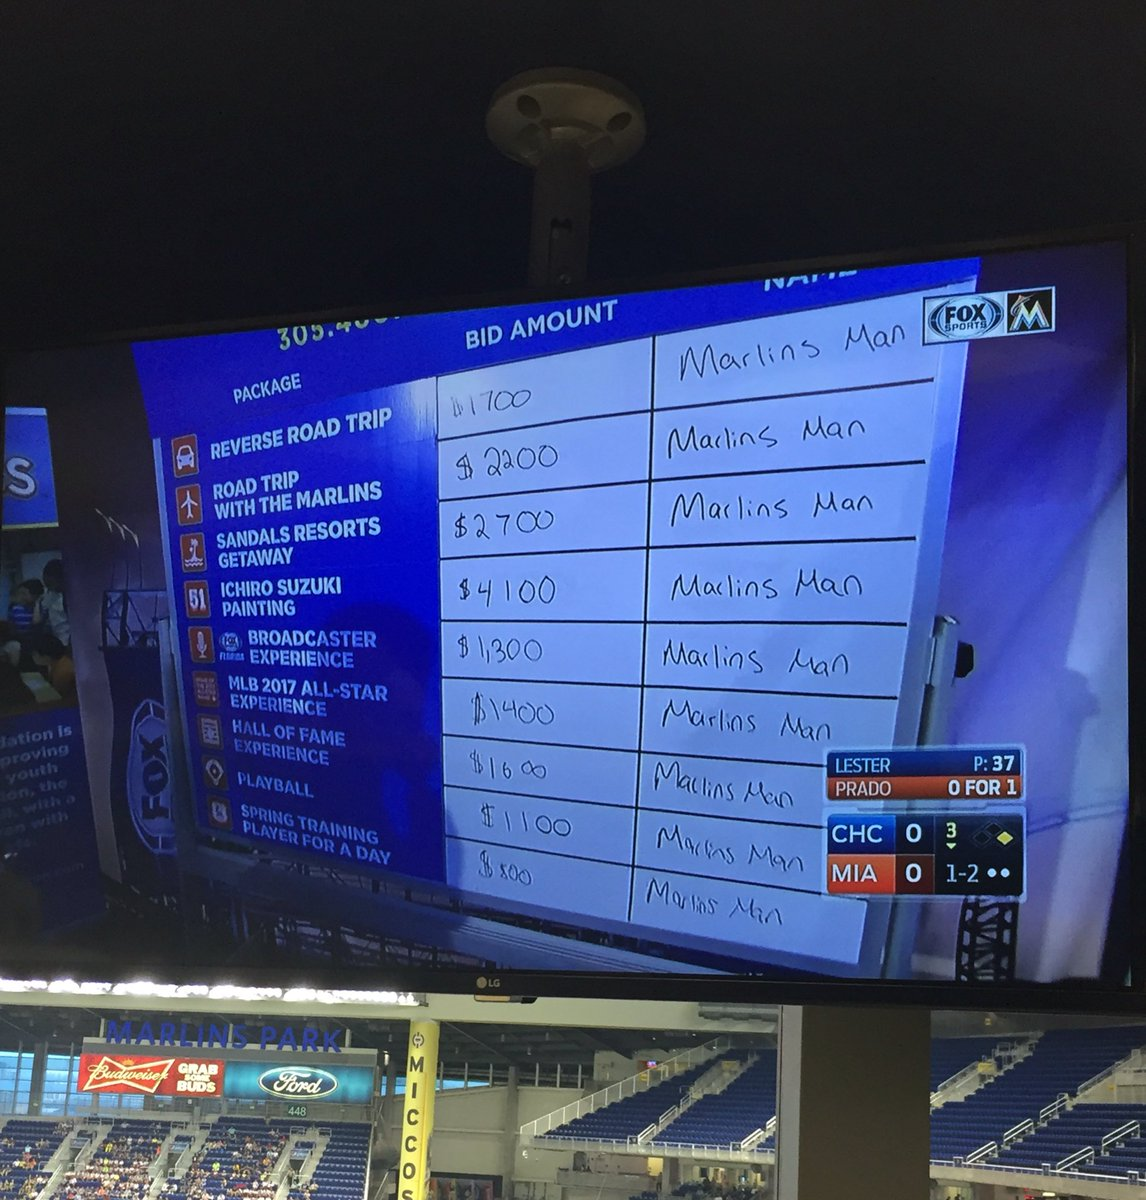 Good luck to everyone bidding in tonight's Marlins auction. https://t.co/9z5OUK40Dl